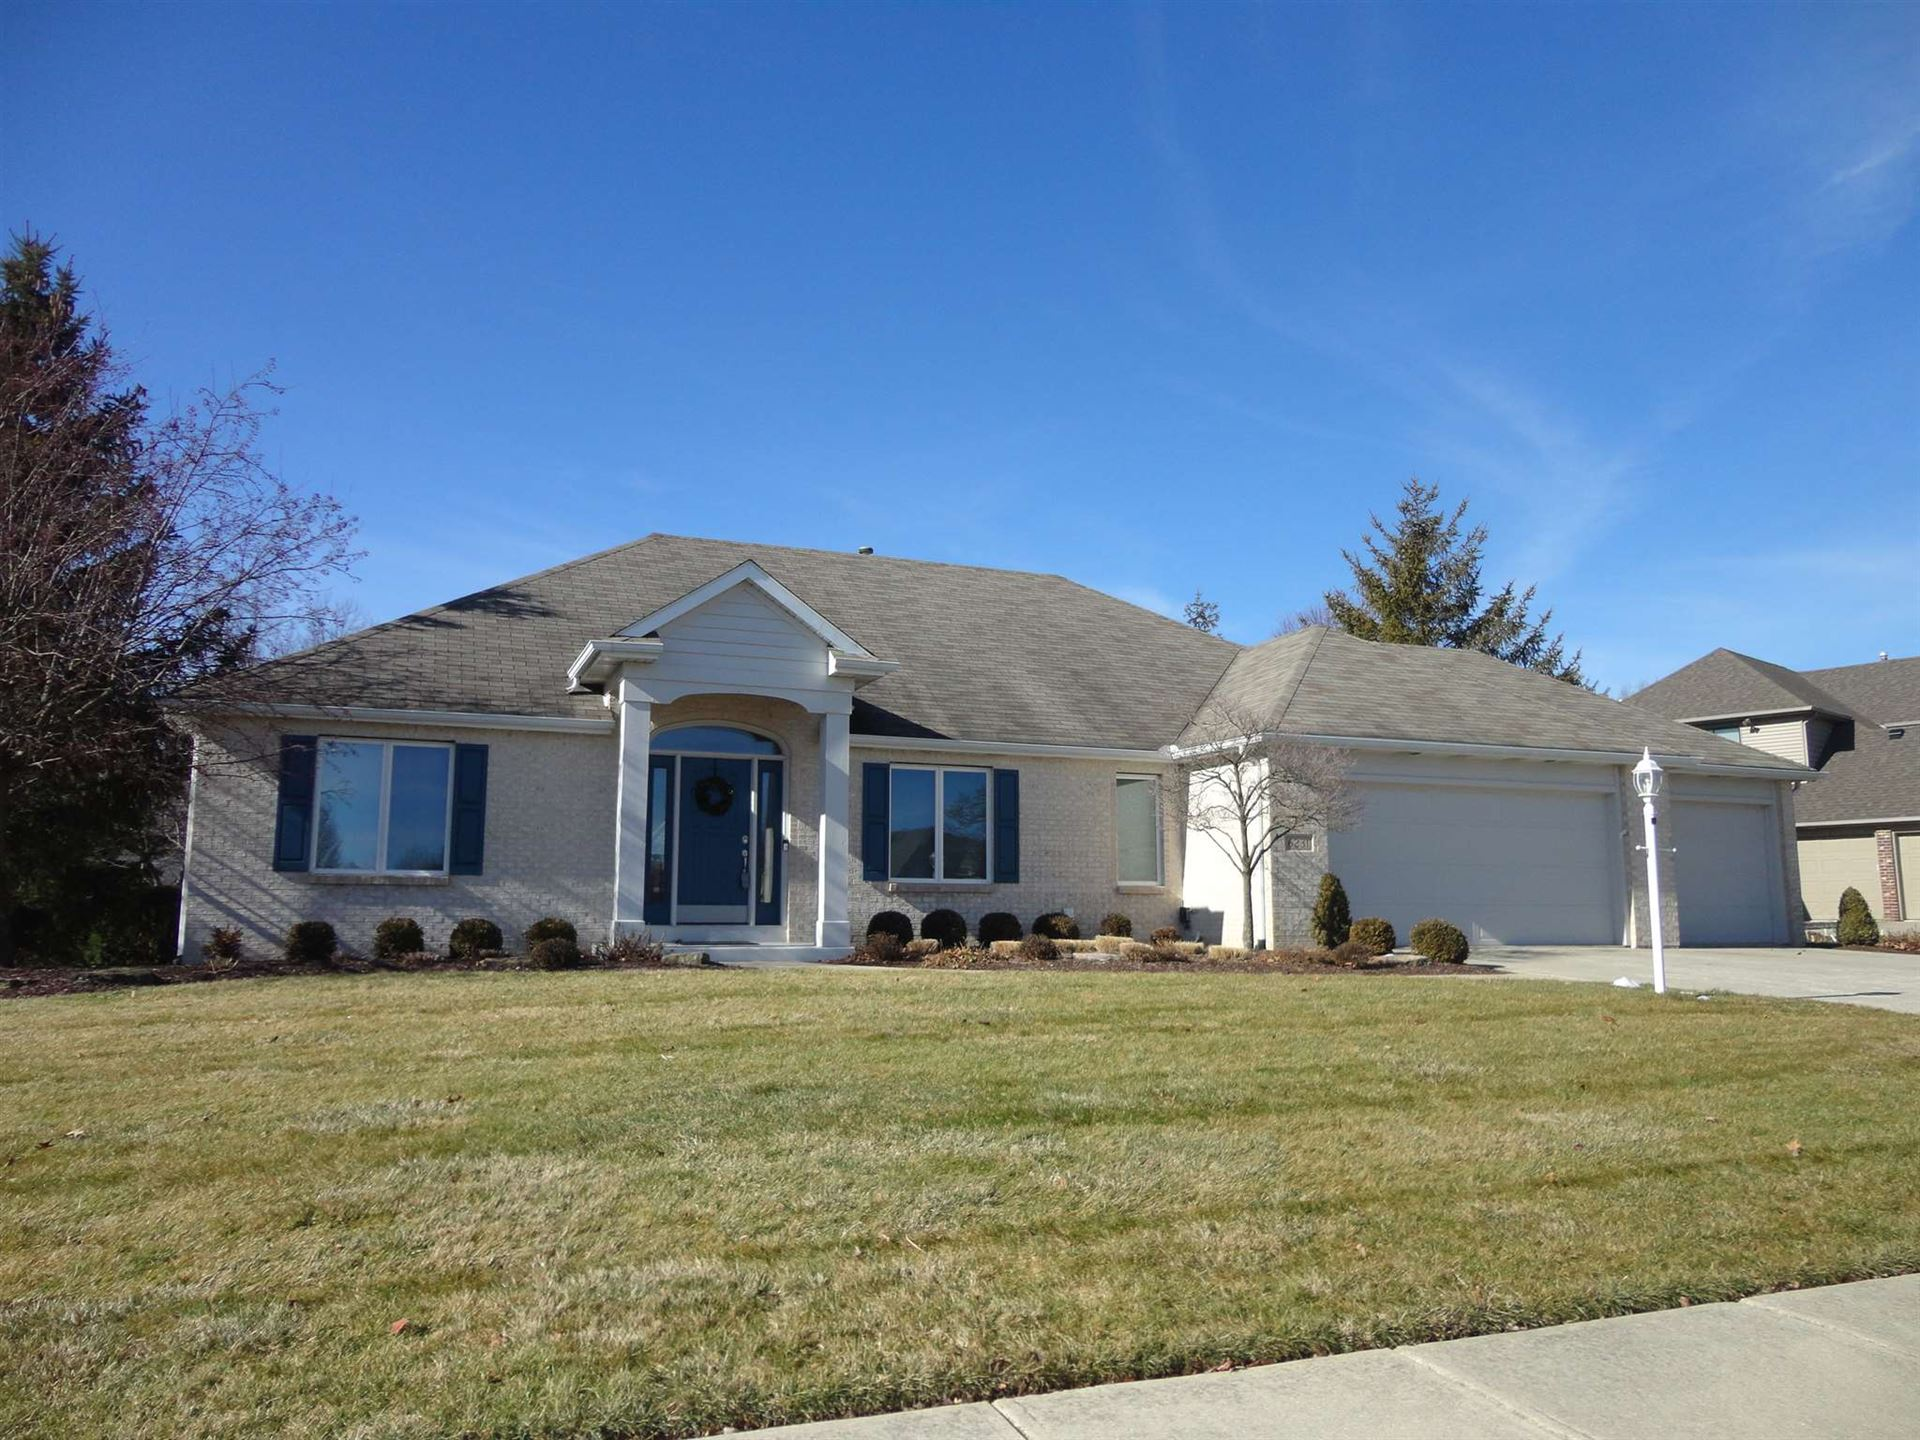 6231 Cherry Hill Parkway, Fort Wayne, IN 46835 - #: 202004597